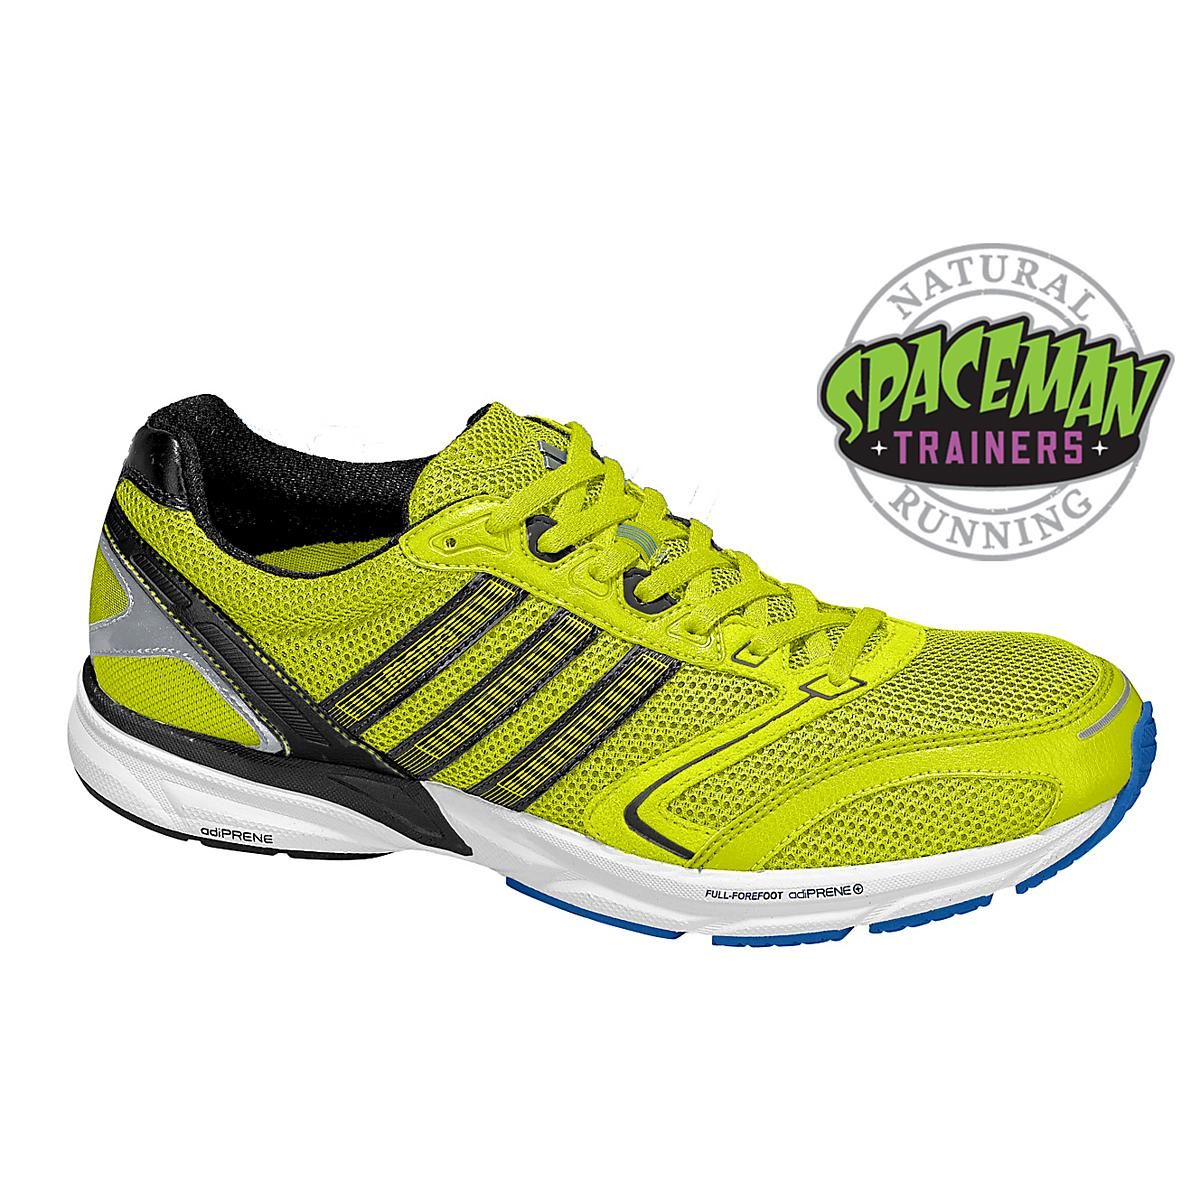 8b0c9f302d52c Mens adidas adiZero Mana Racing Shoe at Road Runner Sports